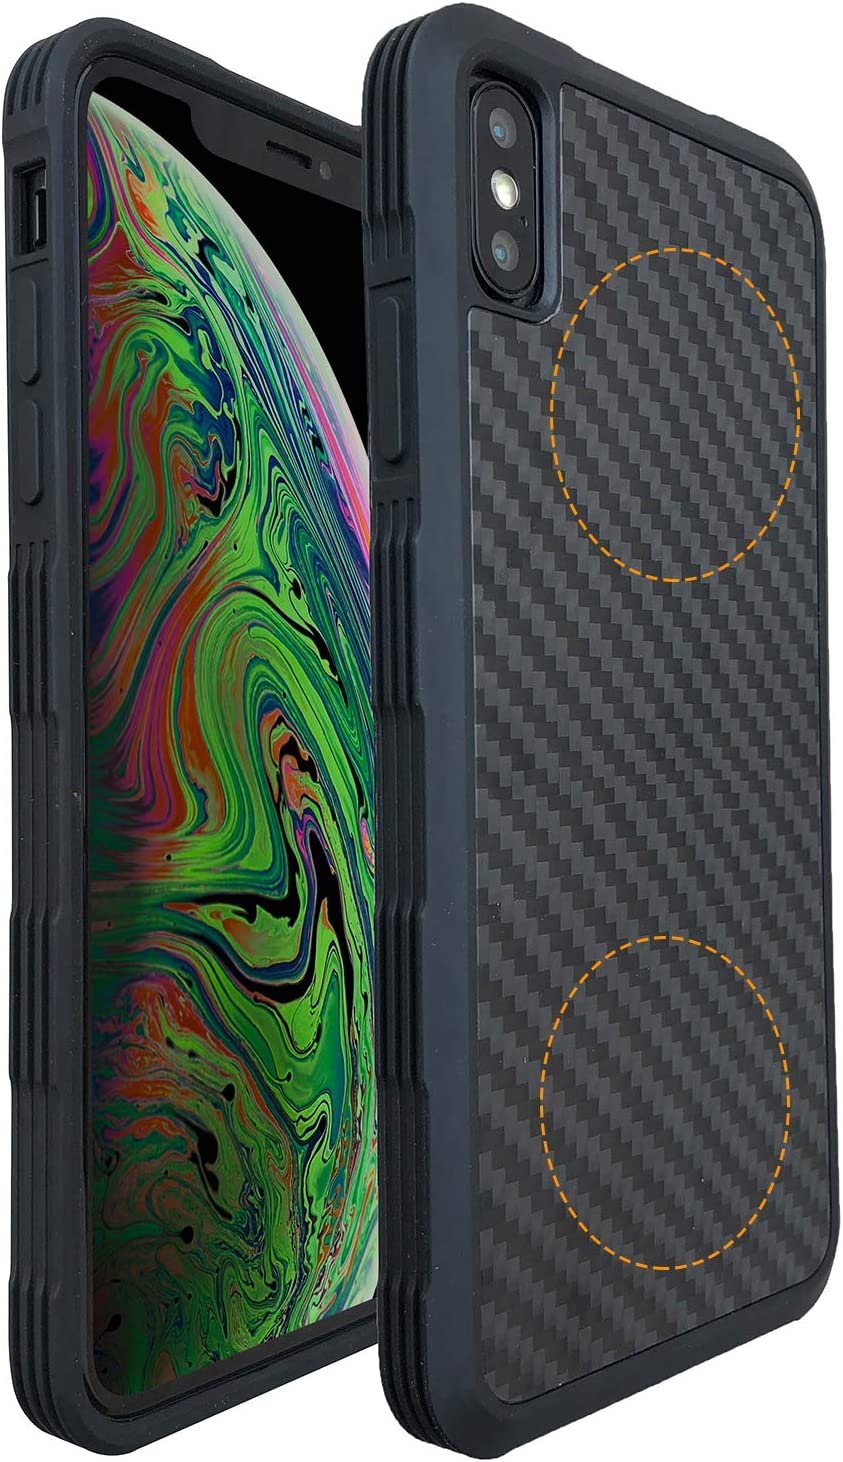 Molzar Carbono Series iPhone Xs Max Case with TPU and Real Weave Carbon Fiber, Built-in Metal Plates for Magnetic Phone Mount,Support Wireless Charging,Compatible with Apple iPhone Xs Max, Black/Black